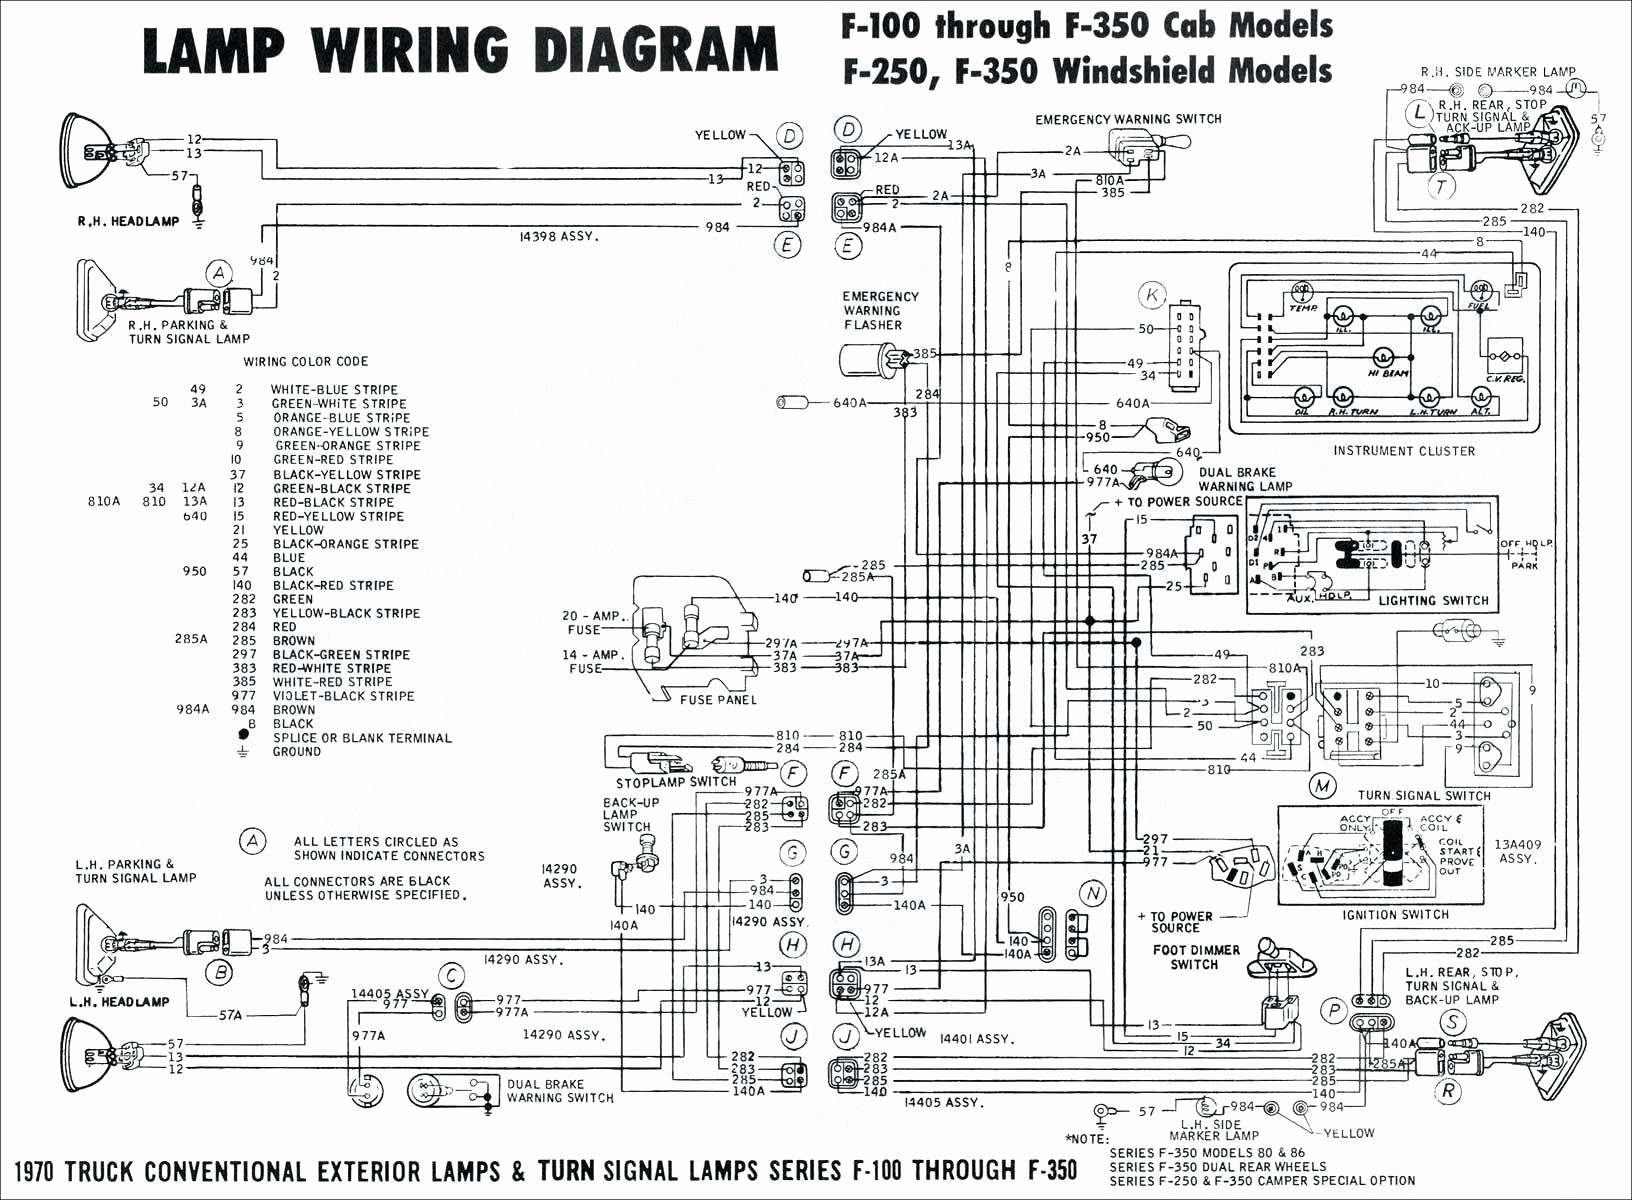 Dodge 4 7 Engine Diagram Dodge Ram Wheelbase Chart Fresh Bed Srt Truck A for Dimensions Bed Of Dodge 4 7 Engine Diagram